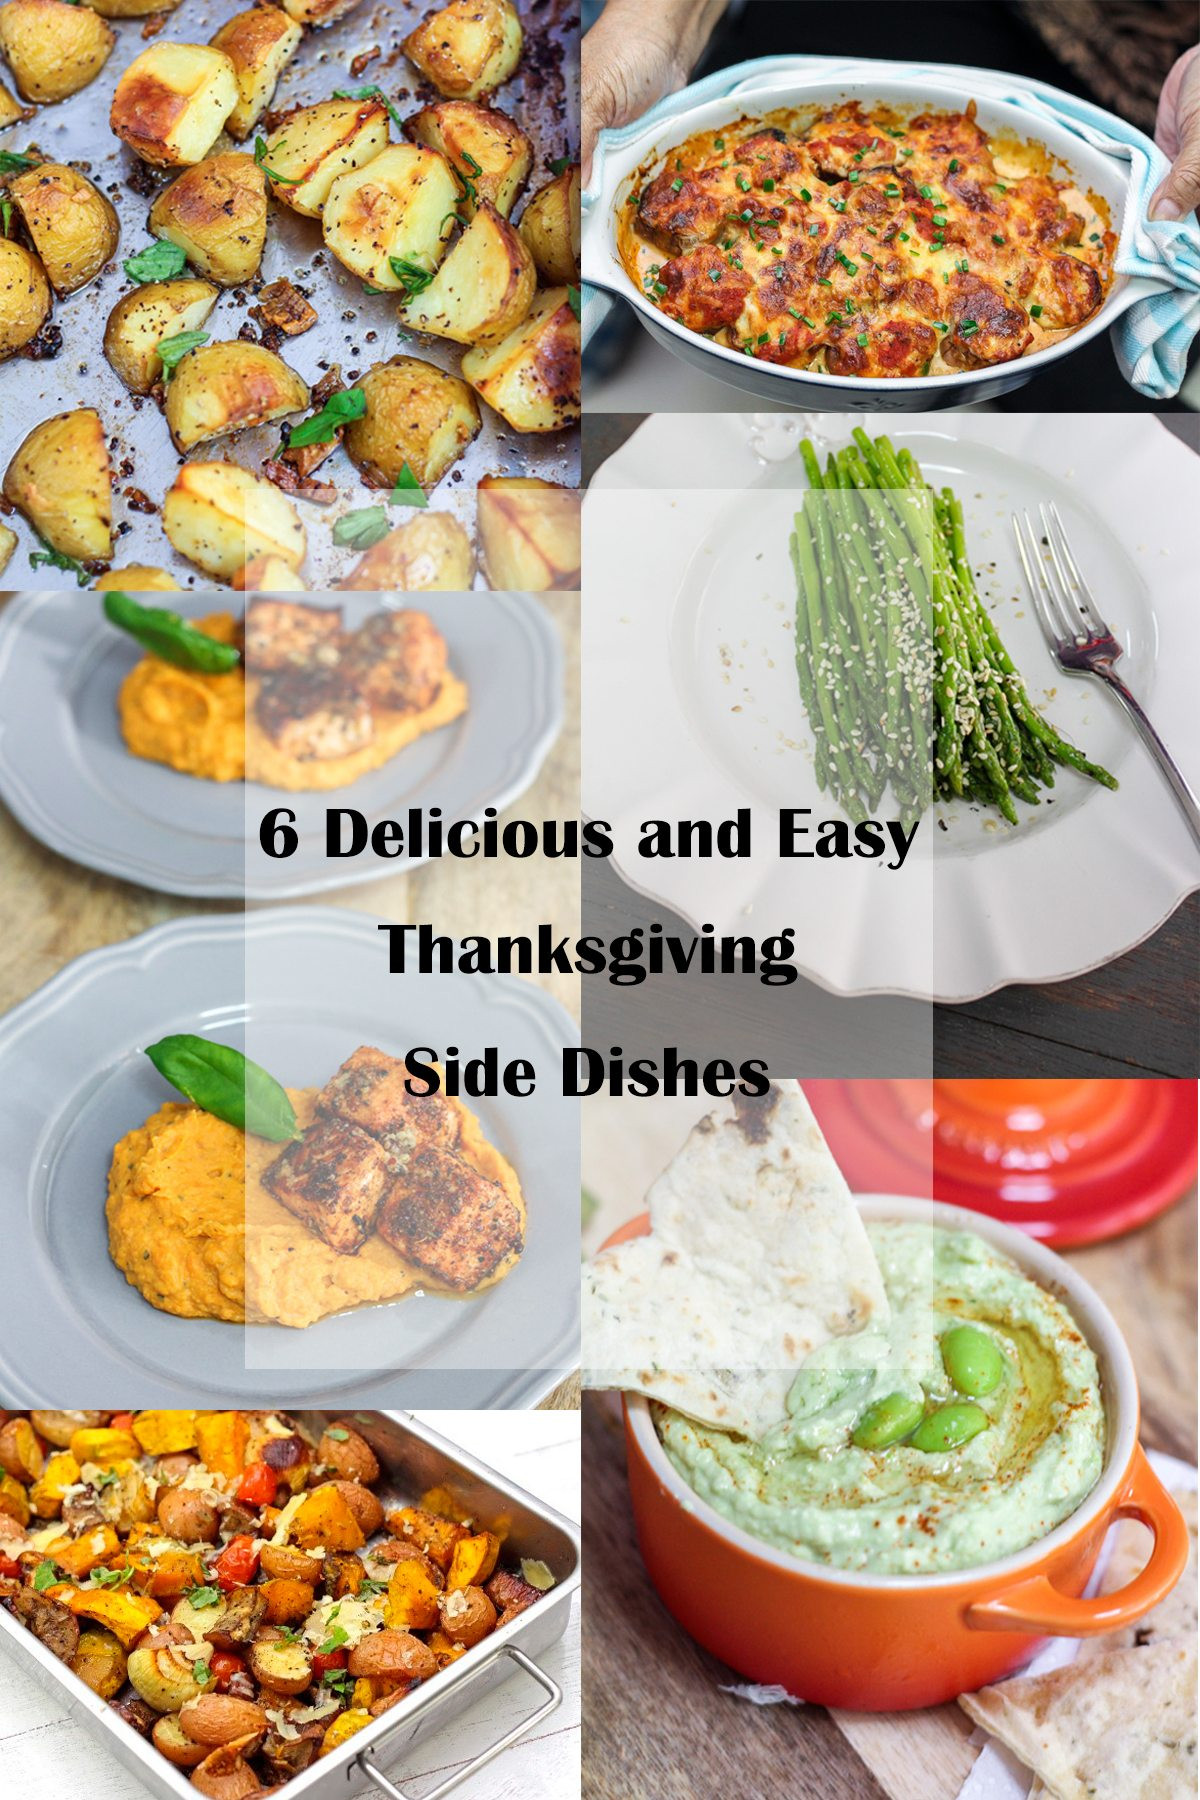 Traditional Thanksgiving Side Dishes  6 Delicious and Easy Thanksgiving Side Dishes